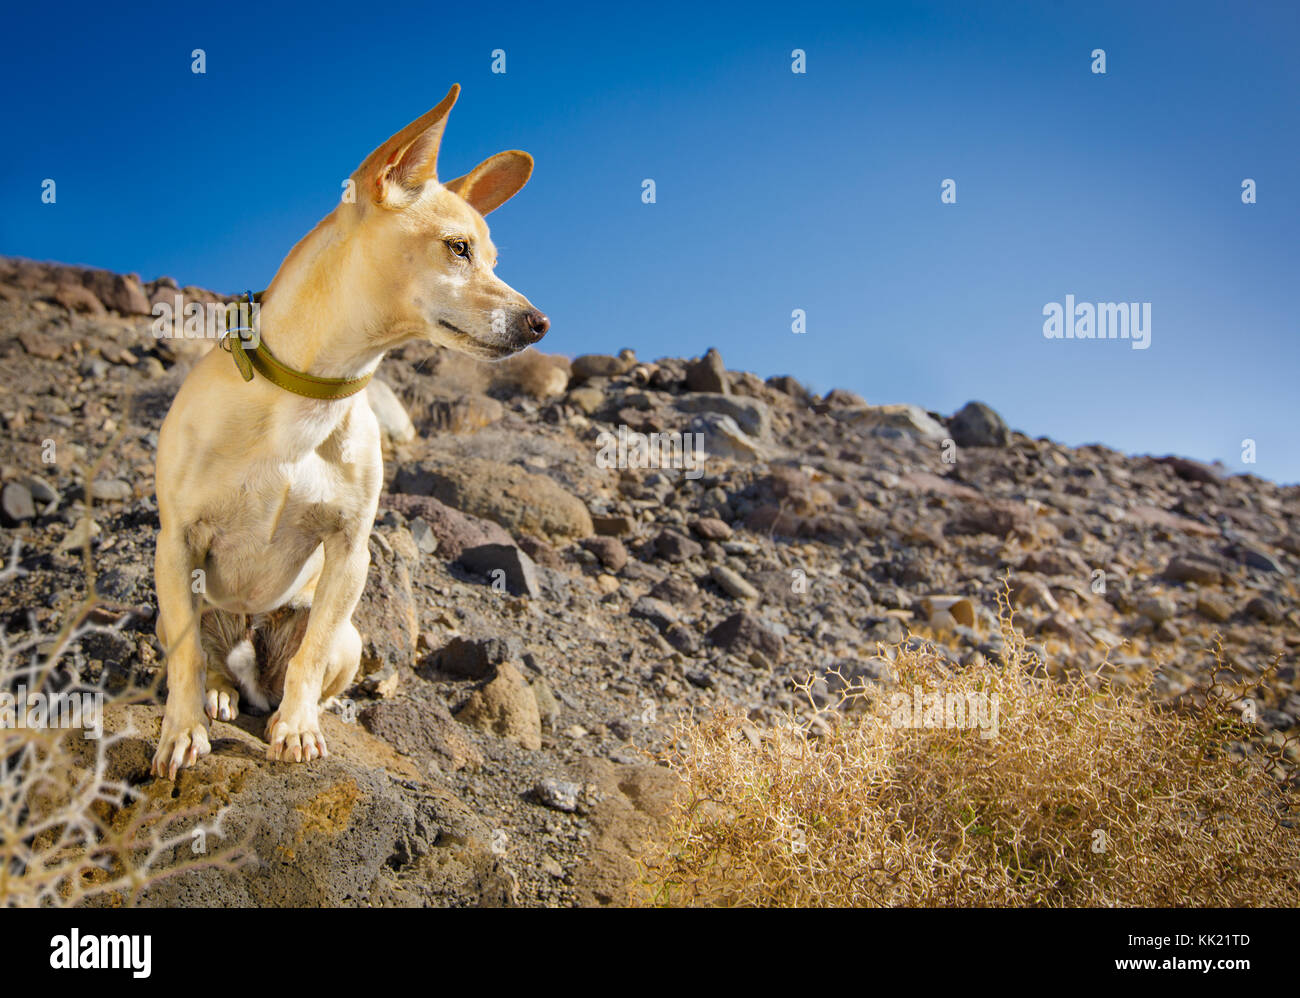 chihuahua dog watching and looking at owner ready to go for a walk outdoors and outside on the desert mountain - Stock Image